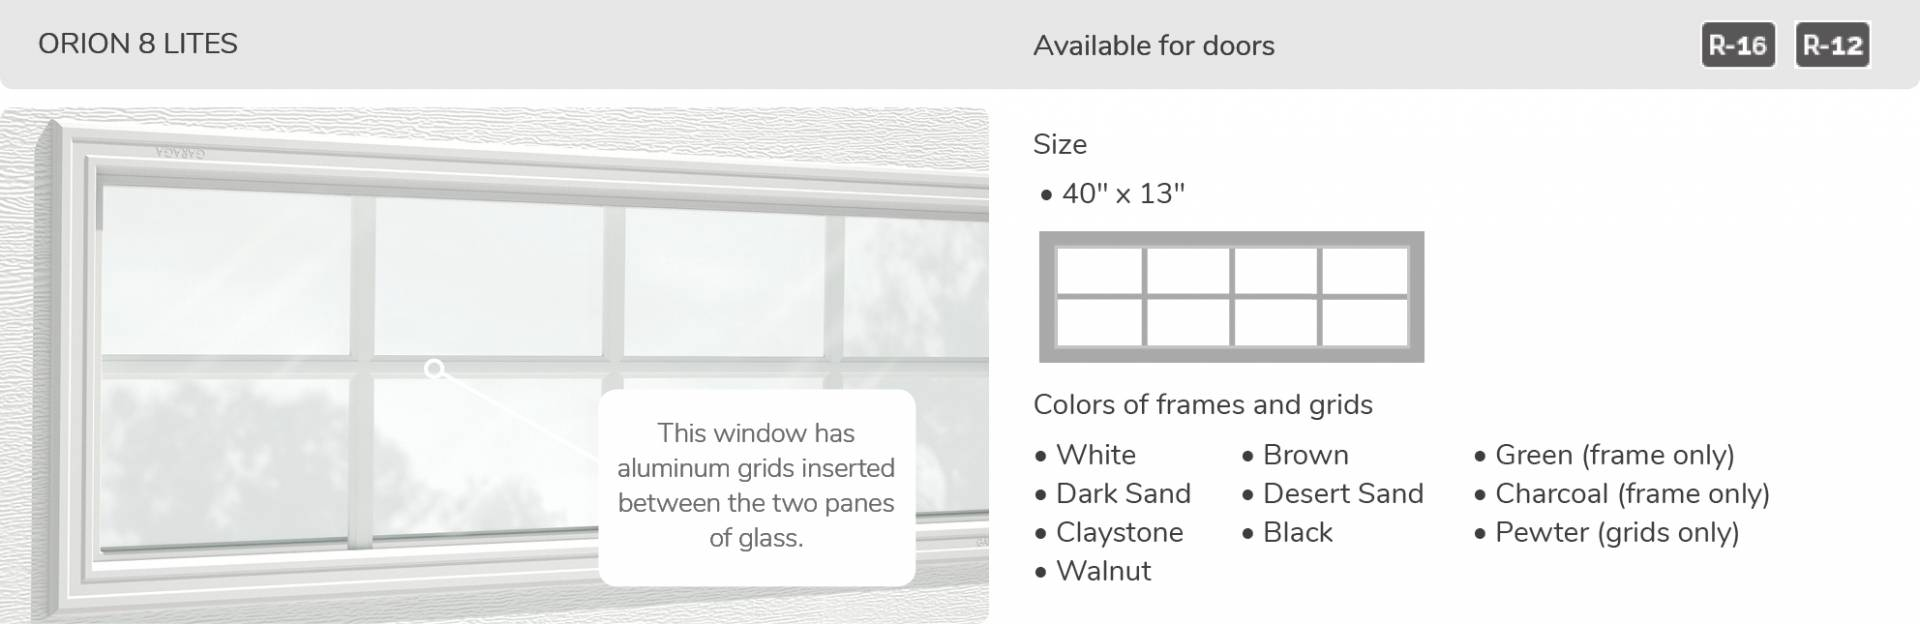 Orion 8 lites, 40' x 13', available for doors R-16 and R-12